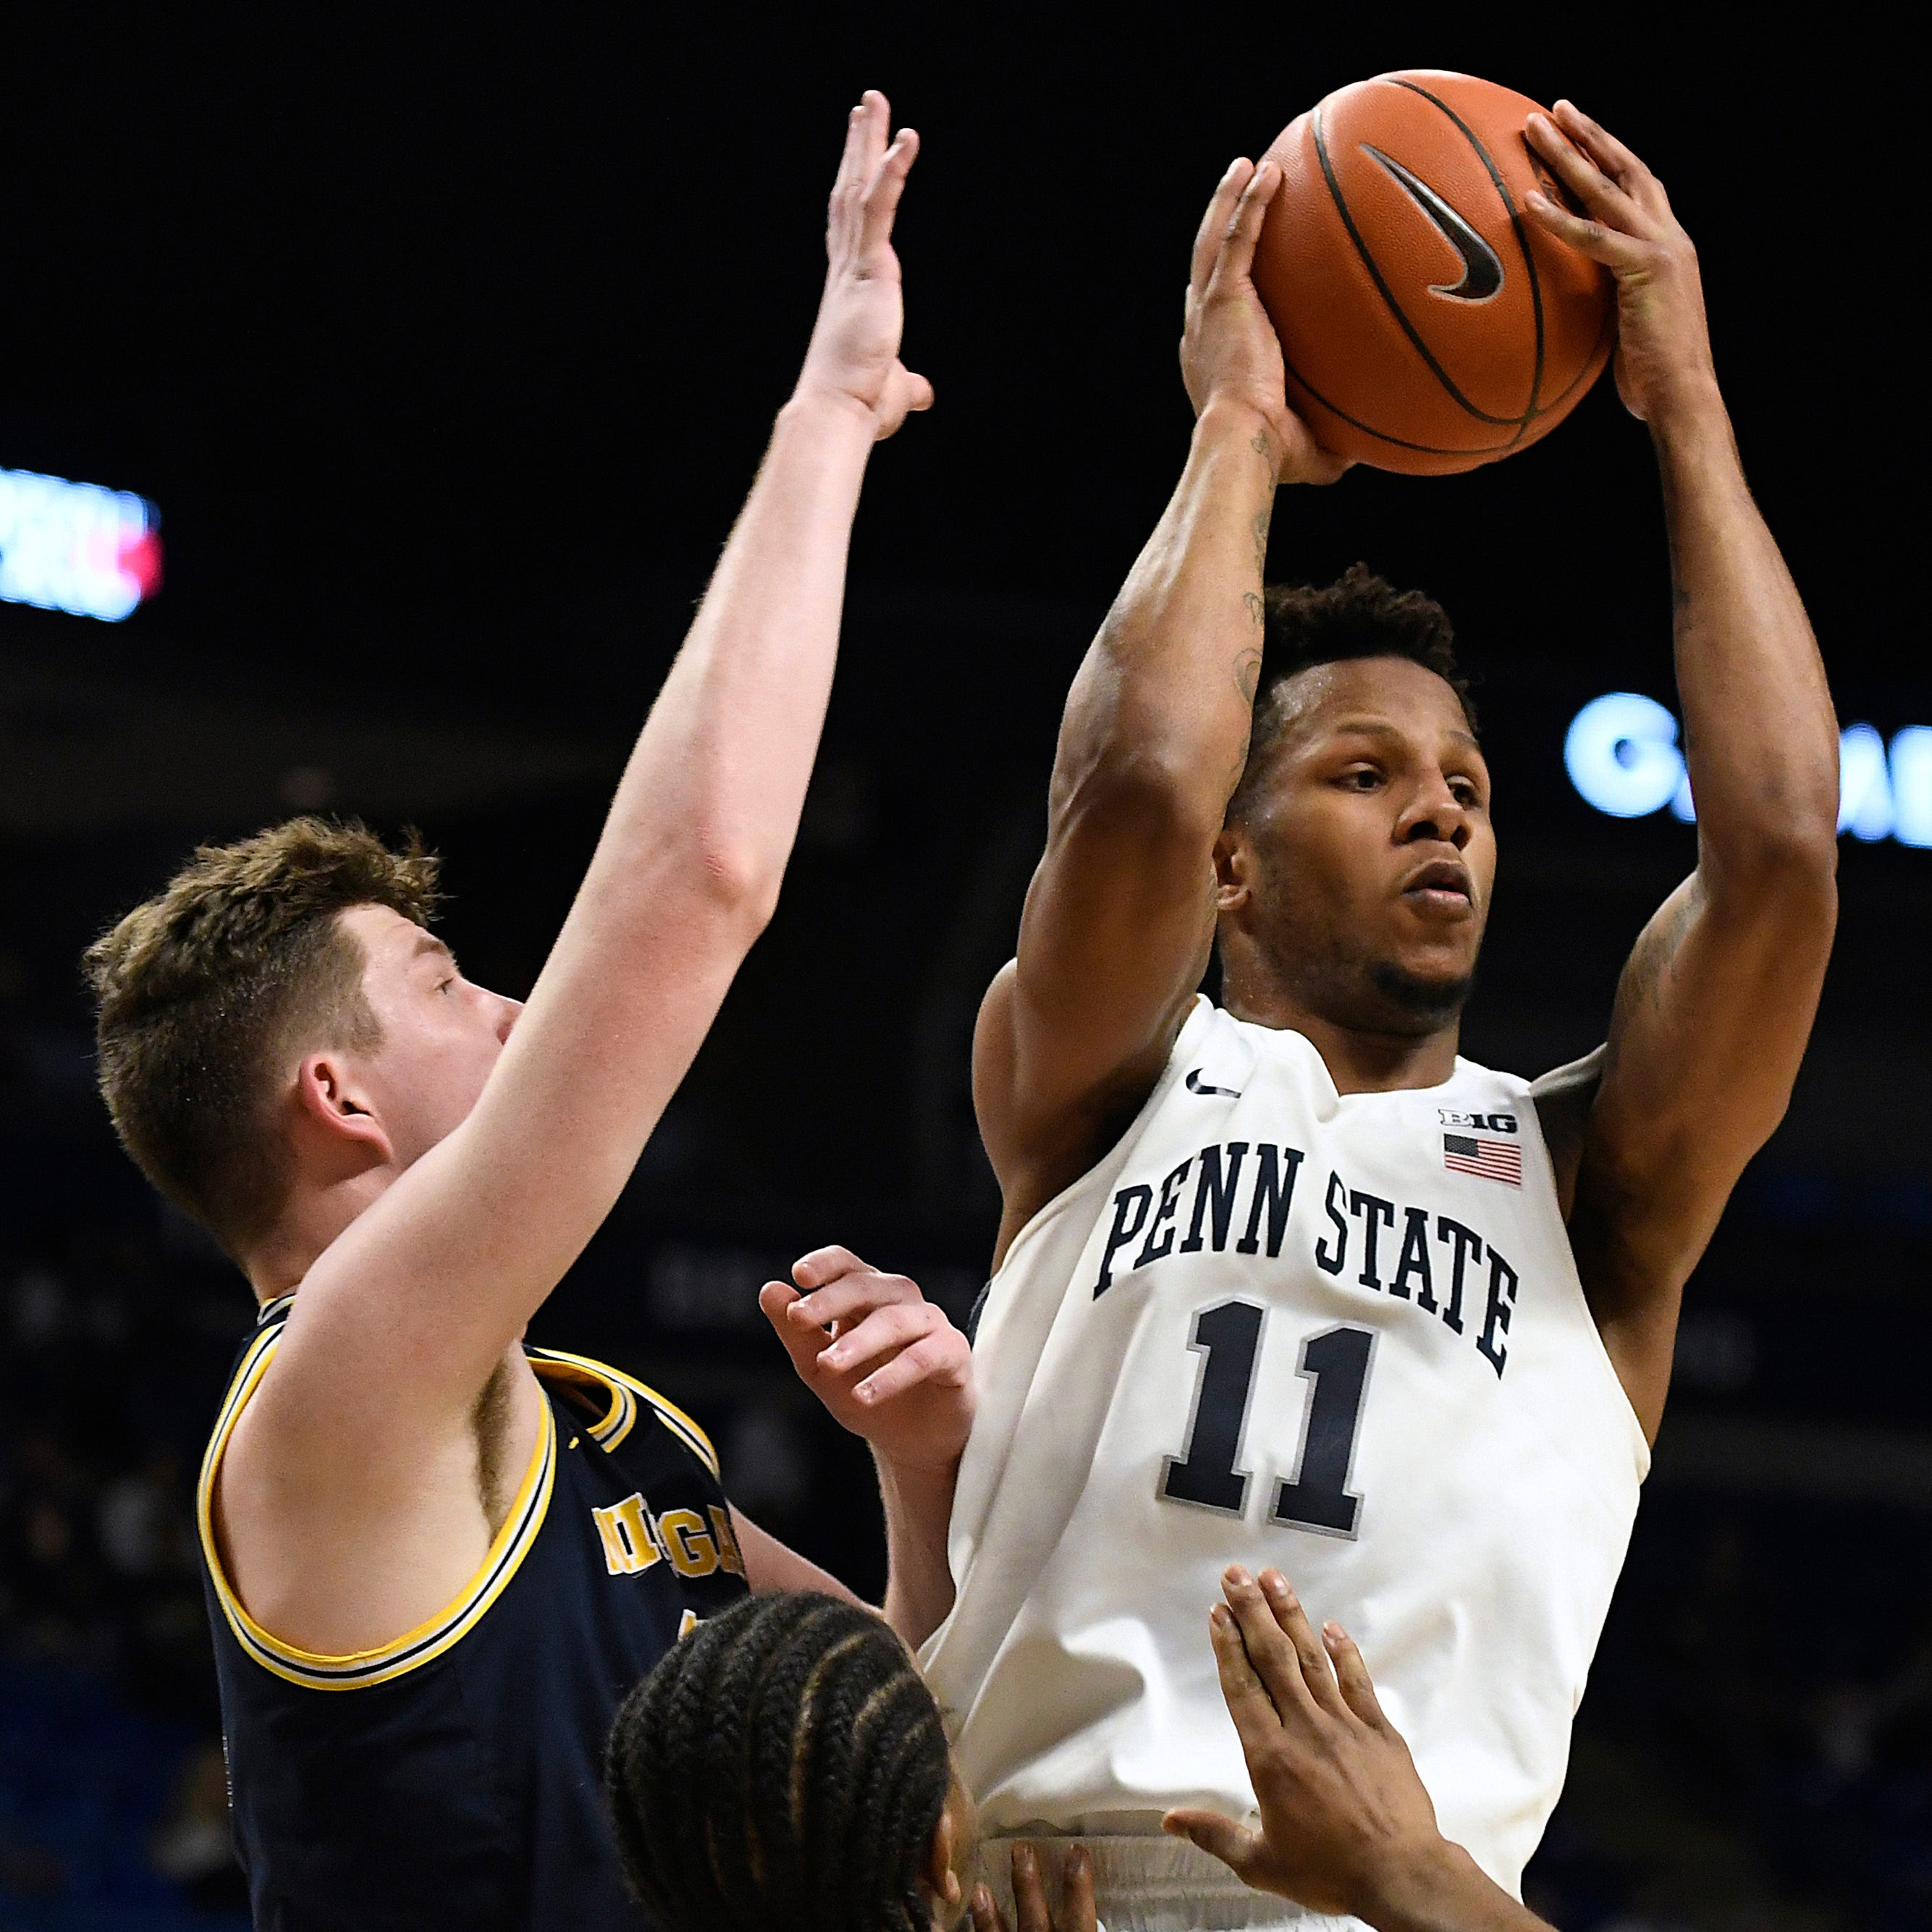 'They punked us': Michigan stumbles against last-place Penn State